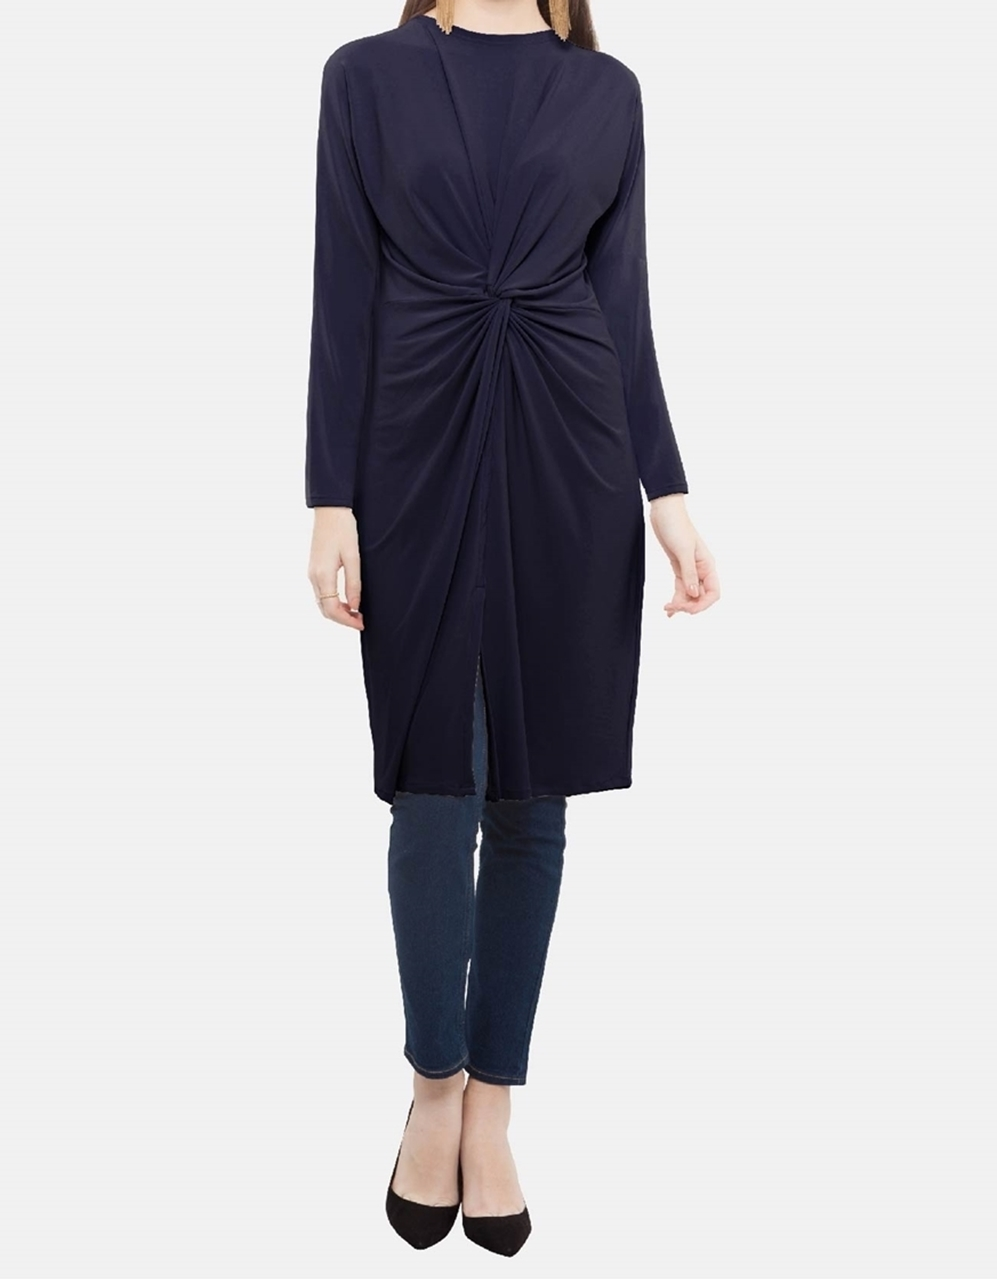 Picture of Ophelia Blouse in Ensign Blue